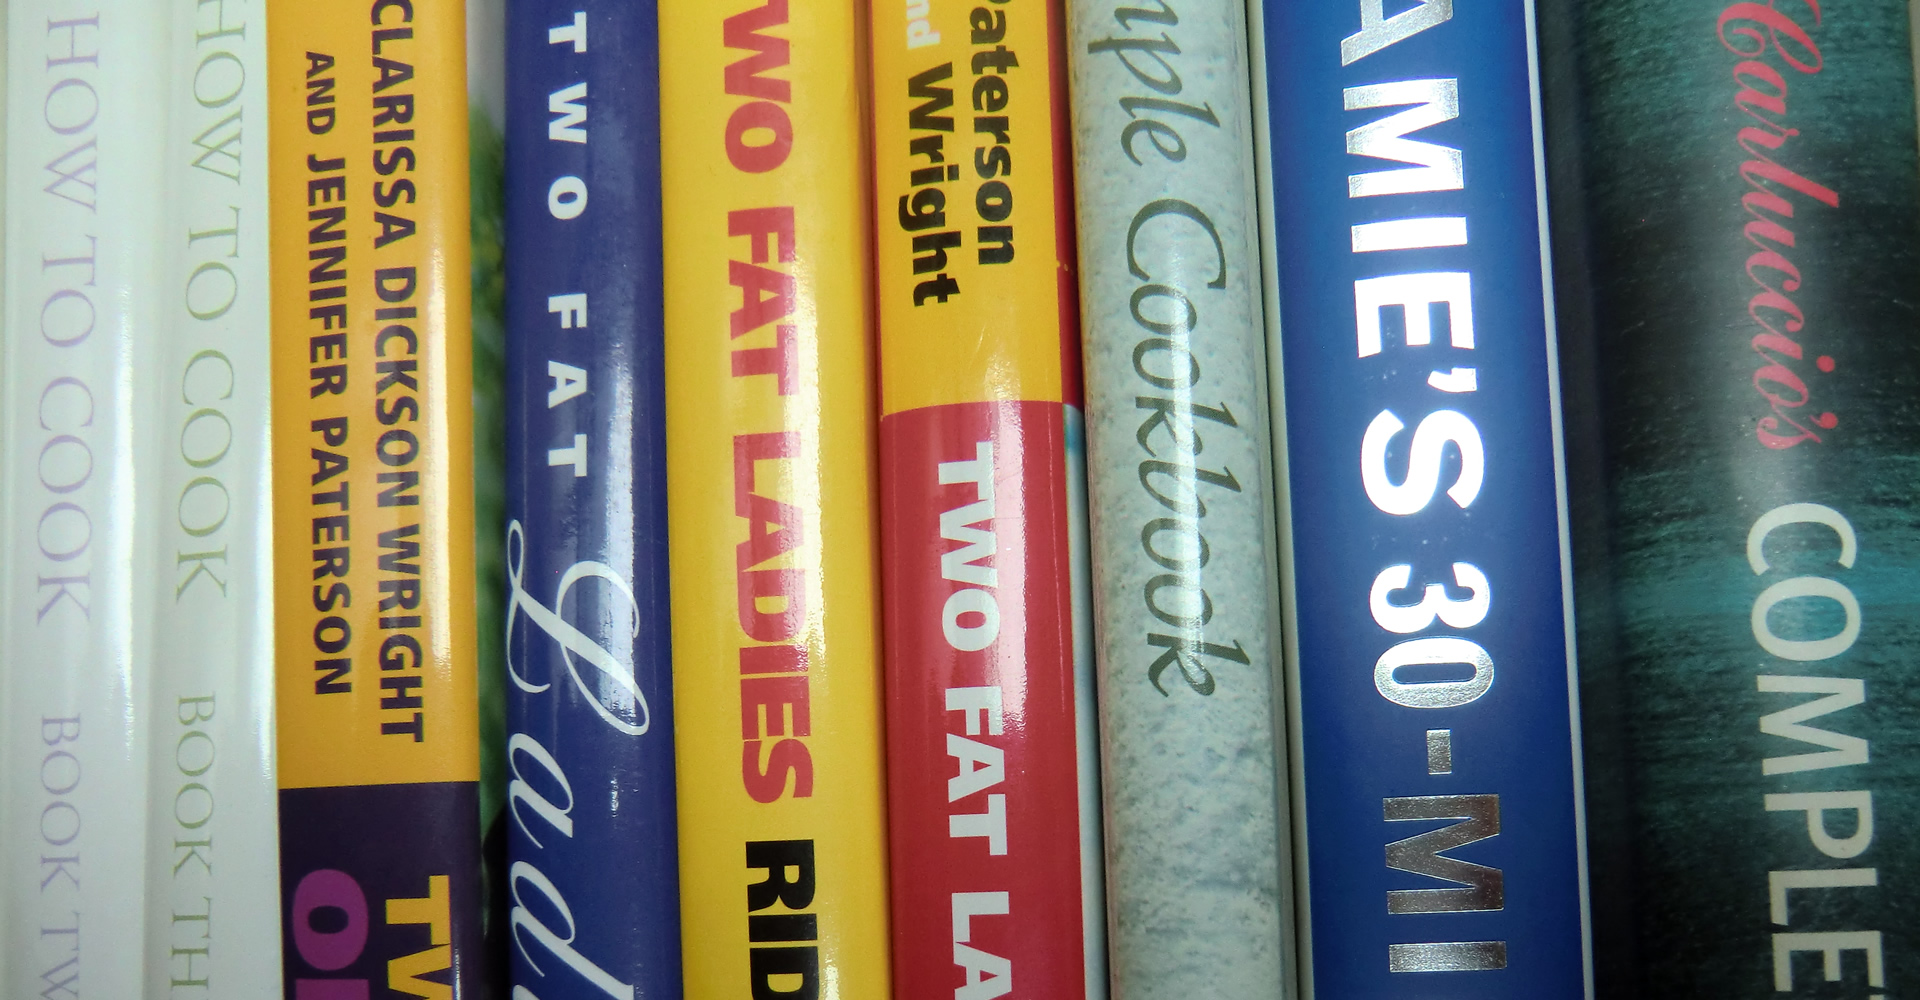 Photo: cookery books.